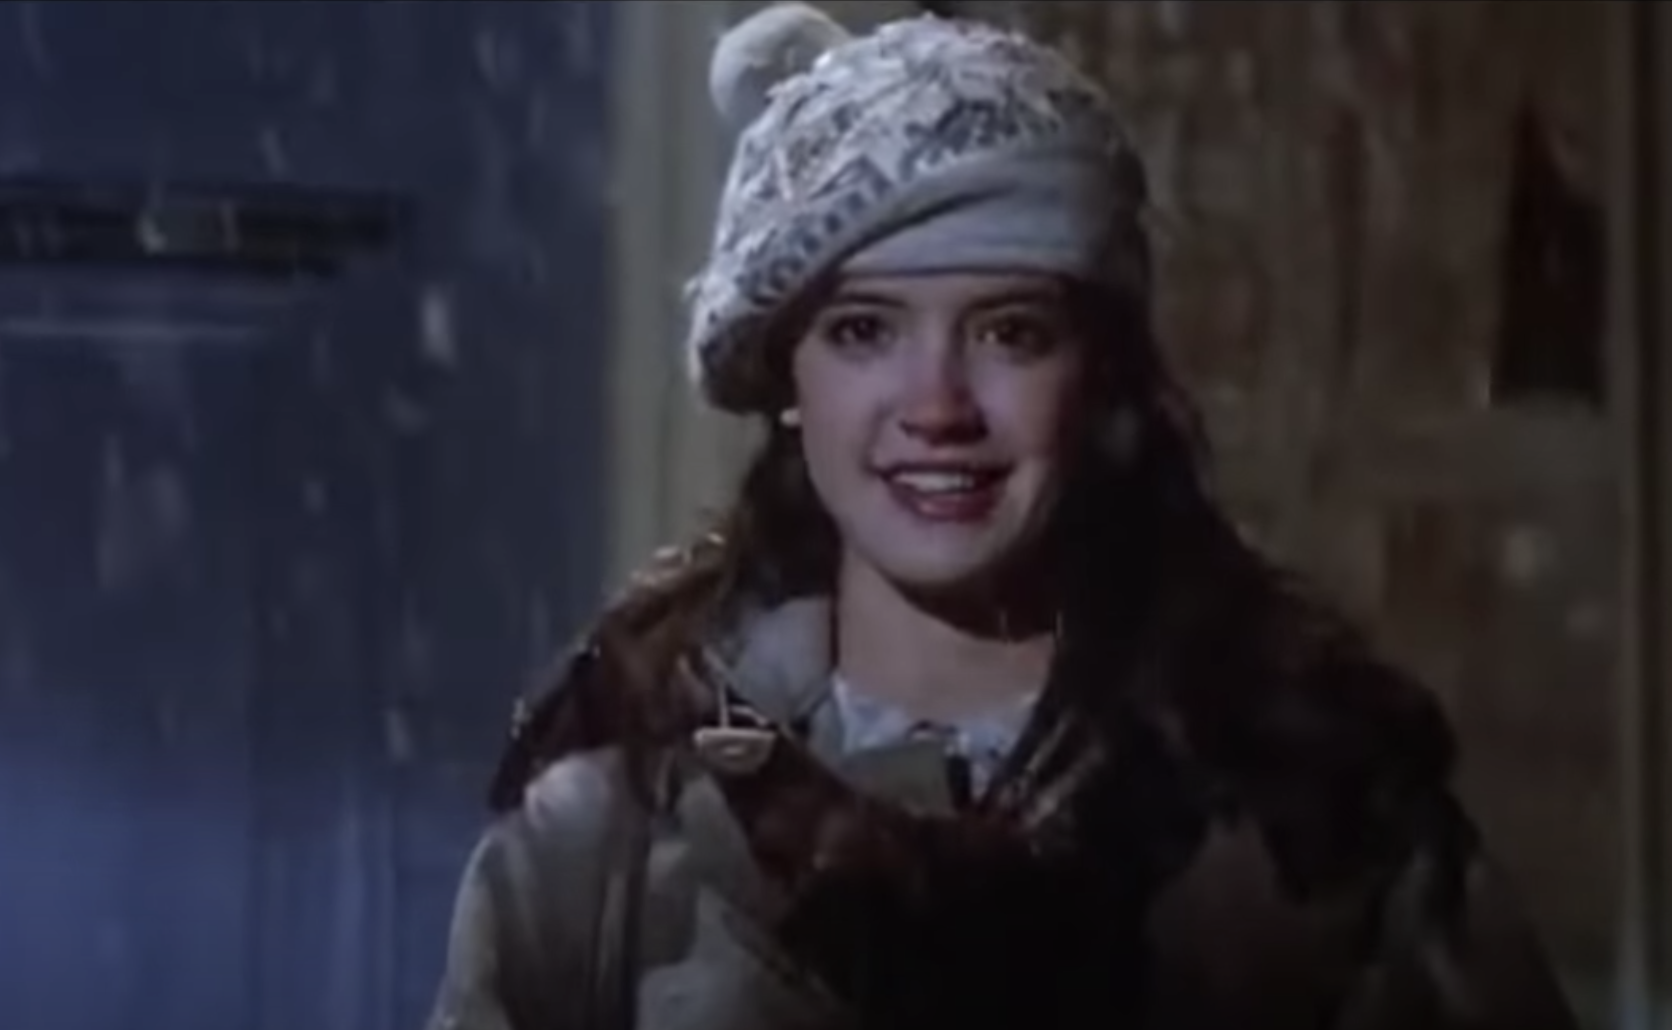 The wonderful Phoebe Cates wearing a cute Christmas hat